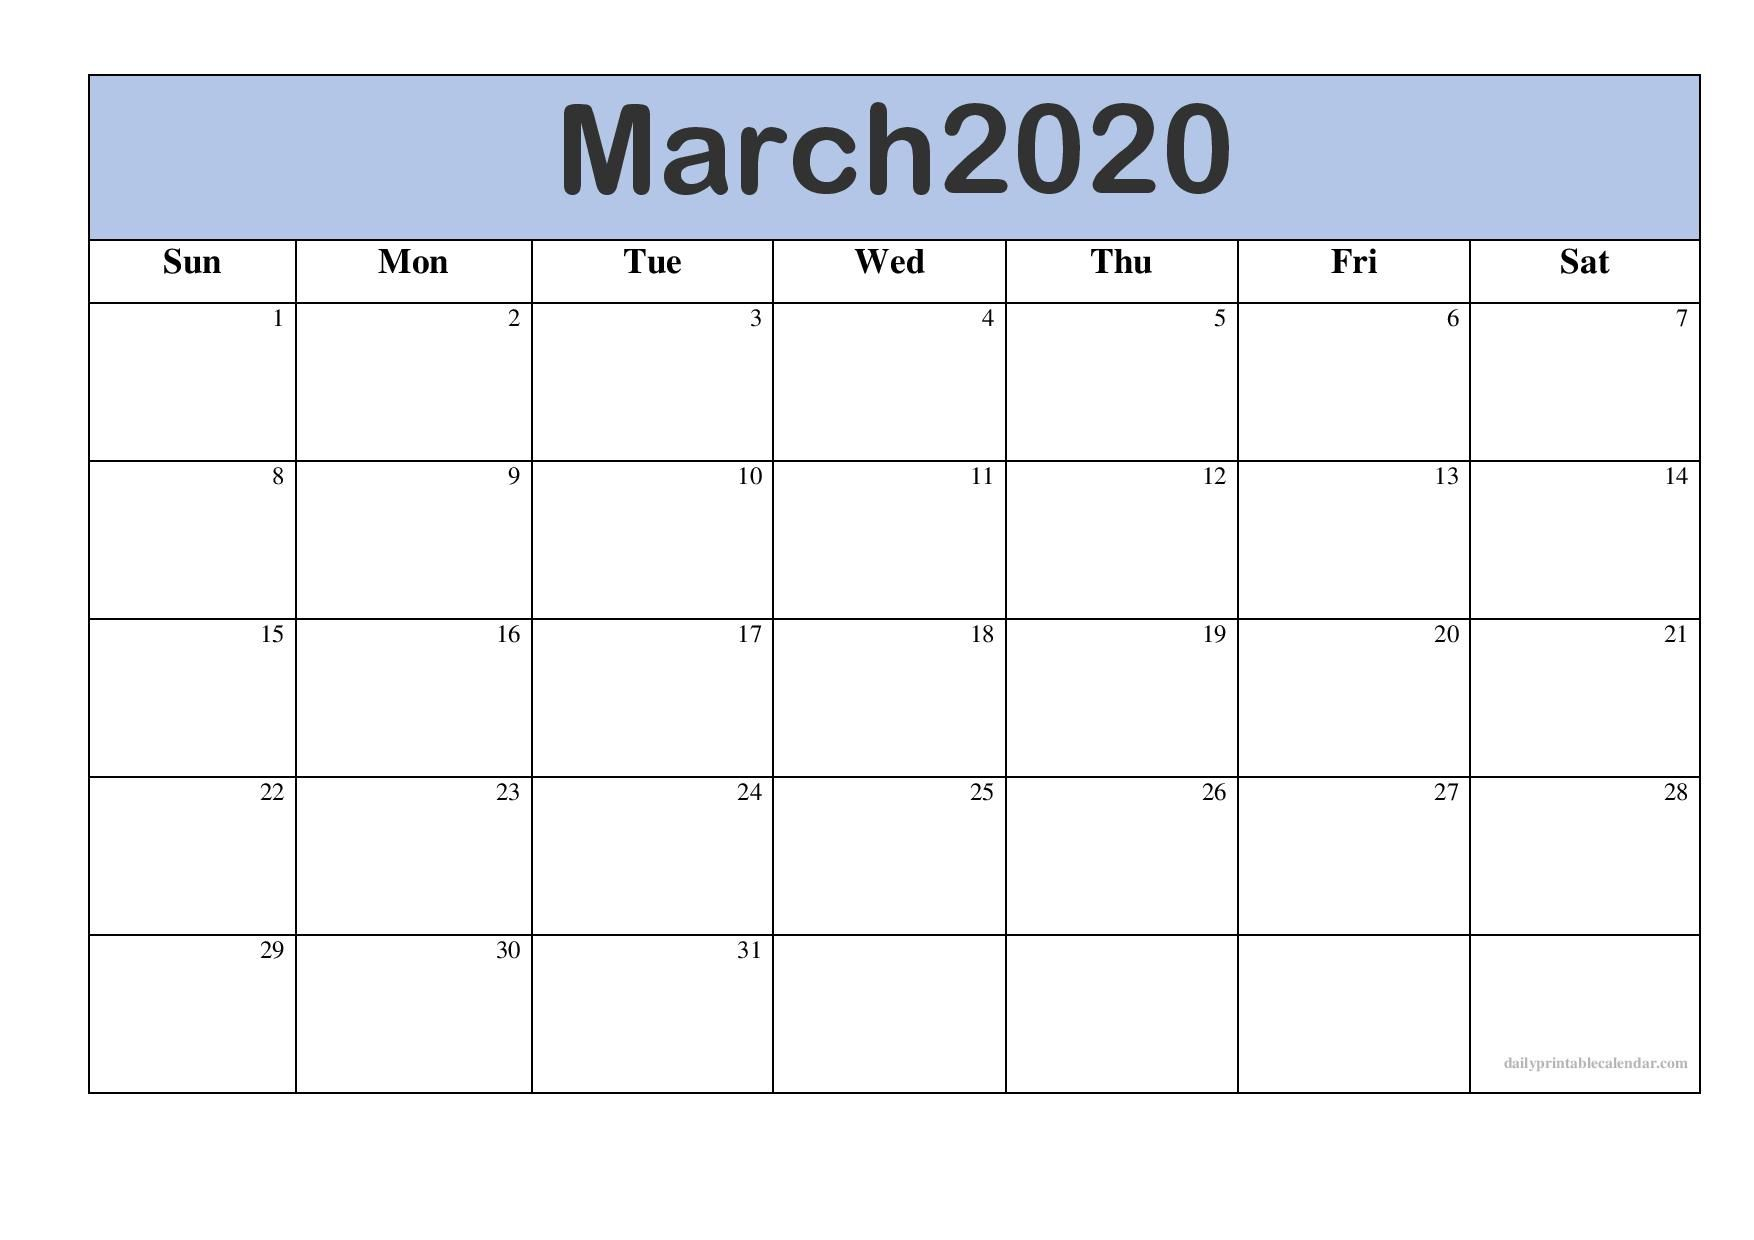 005 Awful Monthly Appointment Calendar Template Idea  Schedule Excel Free 2020Full